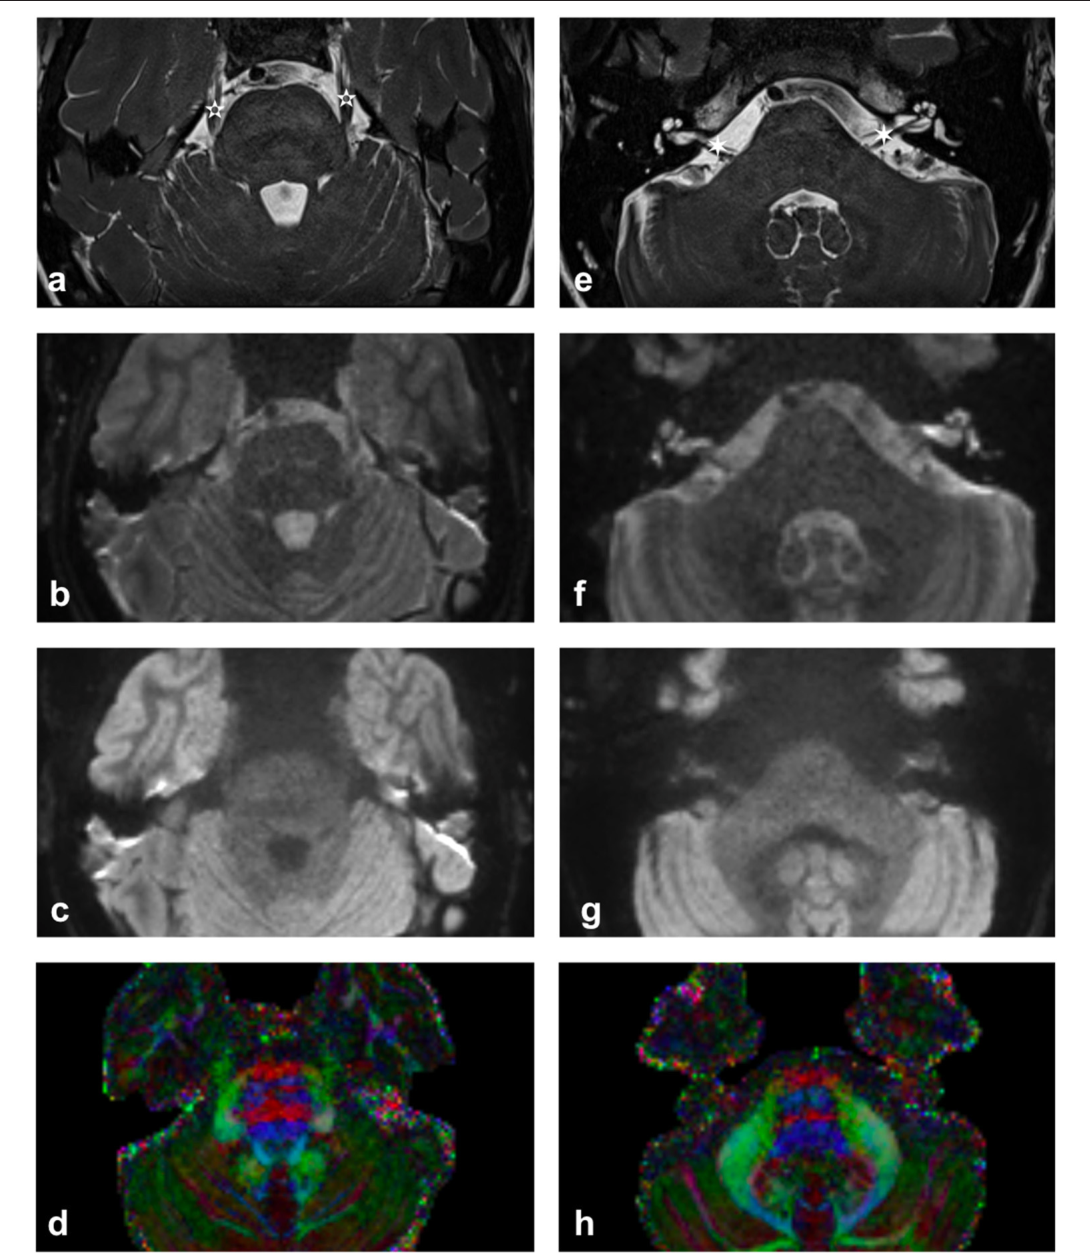 FIGURE 1 | Imaging of upper (a–d) and lower (e–h) pons. (a,e) High contrast T2-weighted images illustrating the trigeminal nerve (white 5-pointed star) and the facial and vestibulocochlear nerves (white 6-pointed star). [acquired with a ZOOMit sequence and a 0.5 × 0.5 × 0.5mm voxel size]. (b,f) mean b0 diffusion weighted image. (c,g) mean b1000 diffusion weighted image. (d,h) Diffusion-encoded-color map. Note the green anterior trigeminal projections from the brainstem in (d) and the red right-left projections of the CN VII/VIII complex in (h) [more pronounced on the subject's right-hand side].